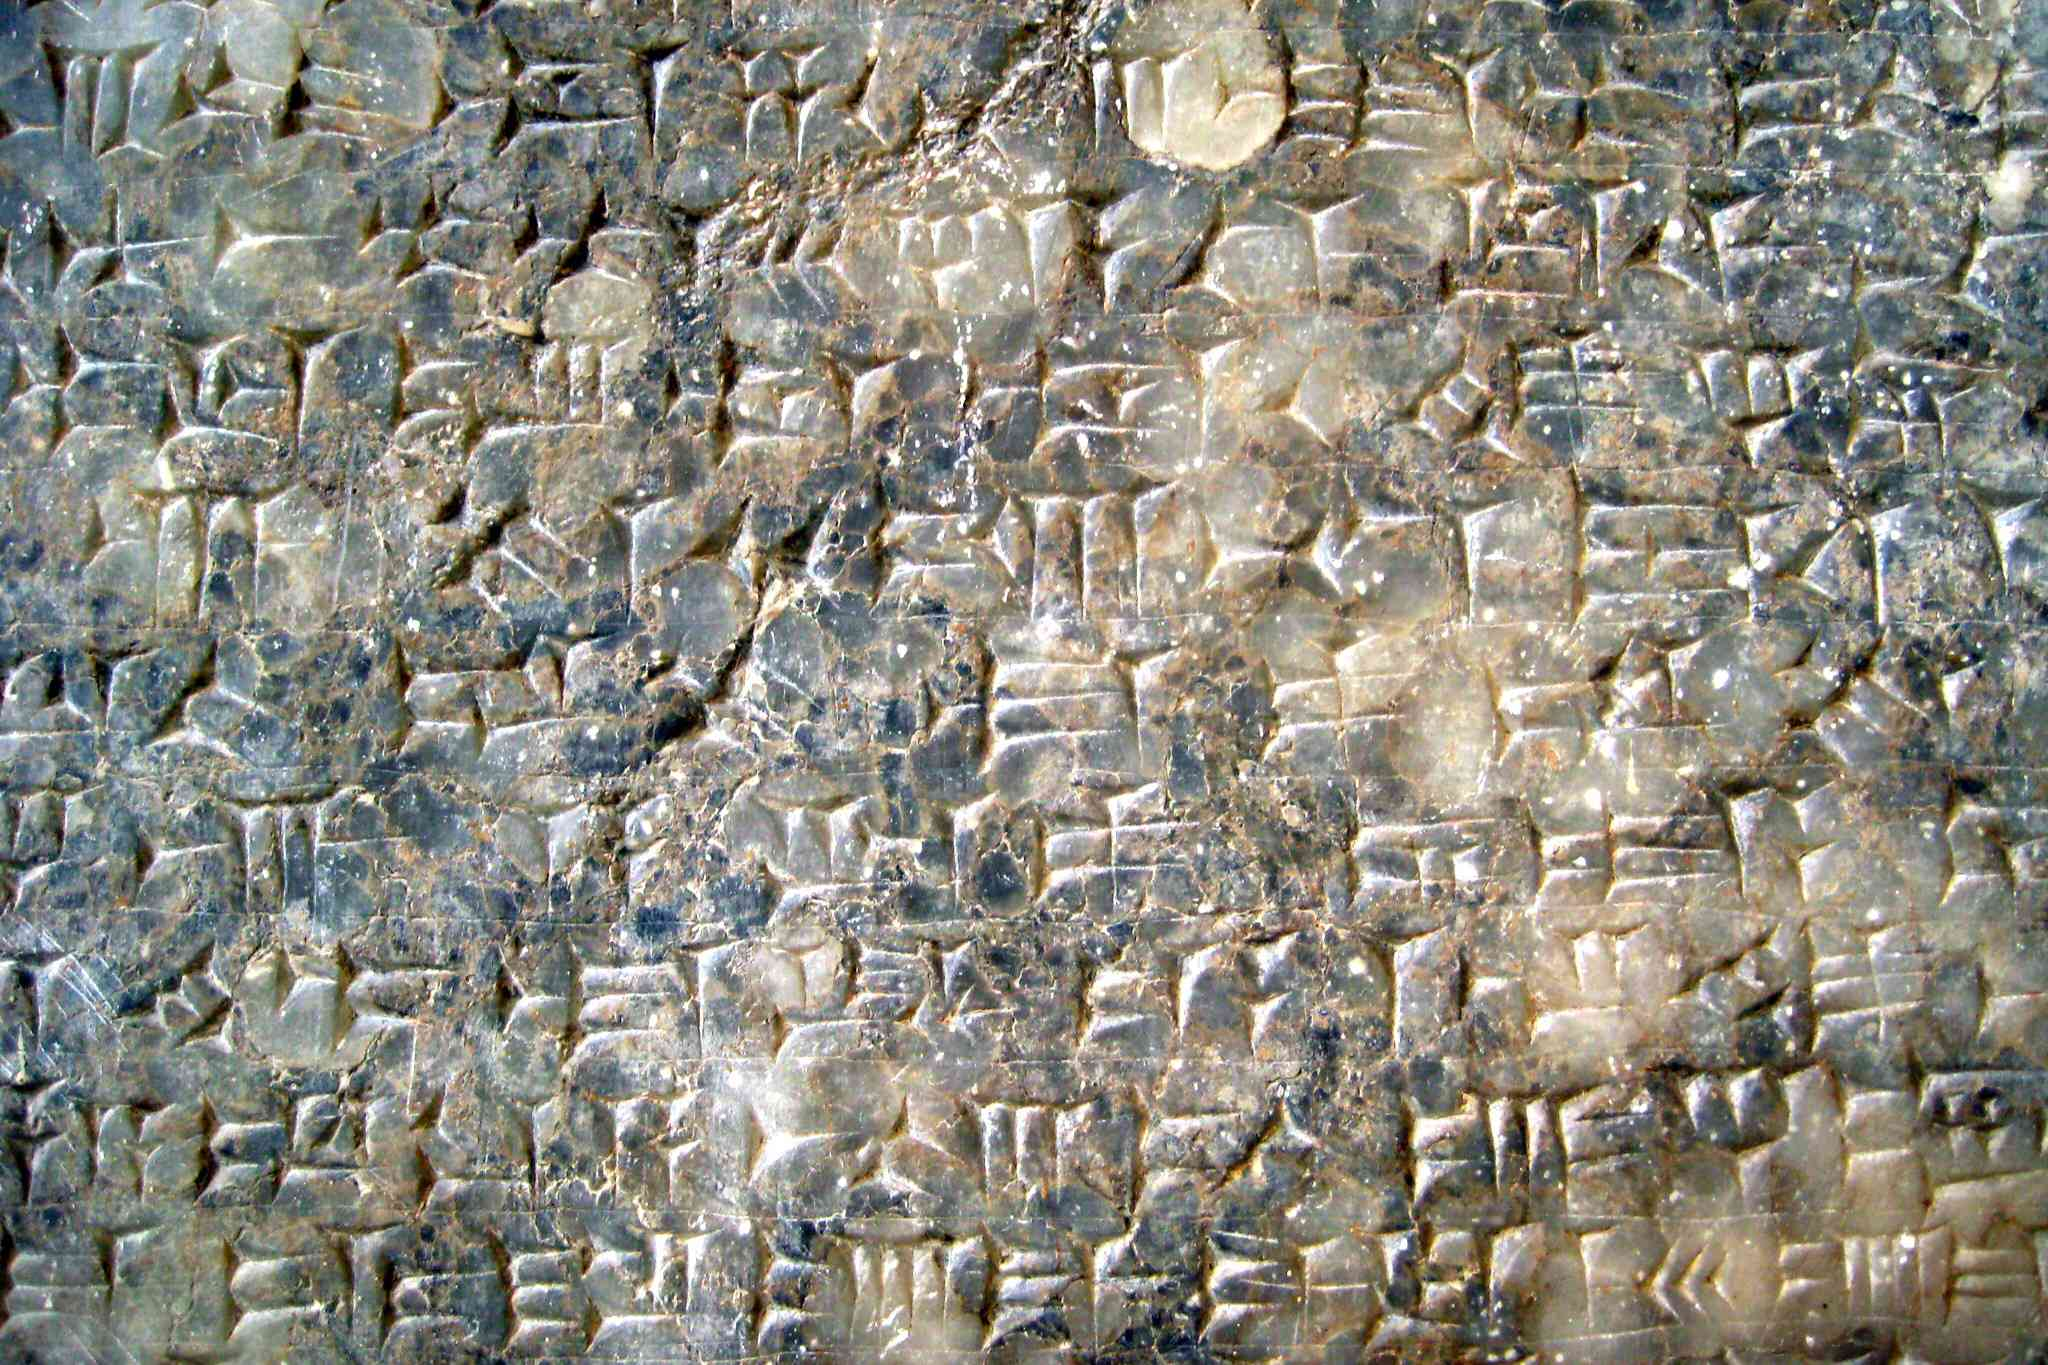 Cuneiform, one of the first forms of writing, covers a stone tablet